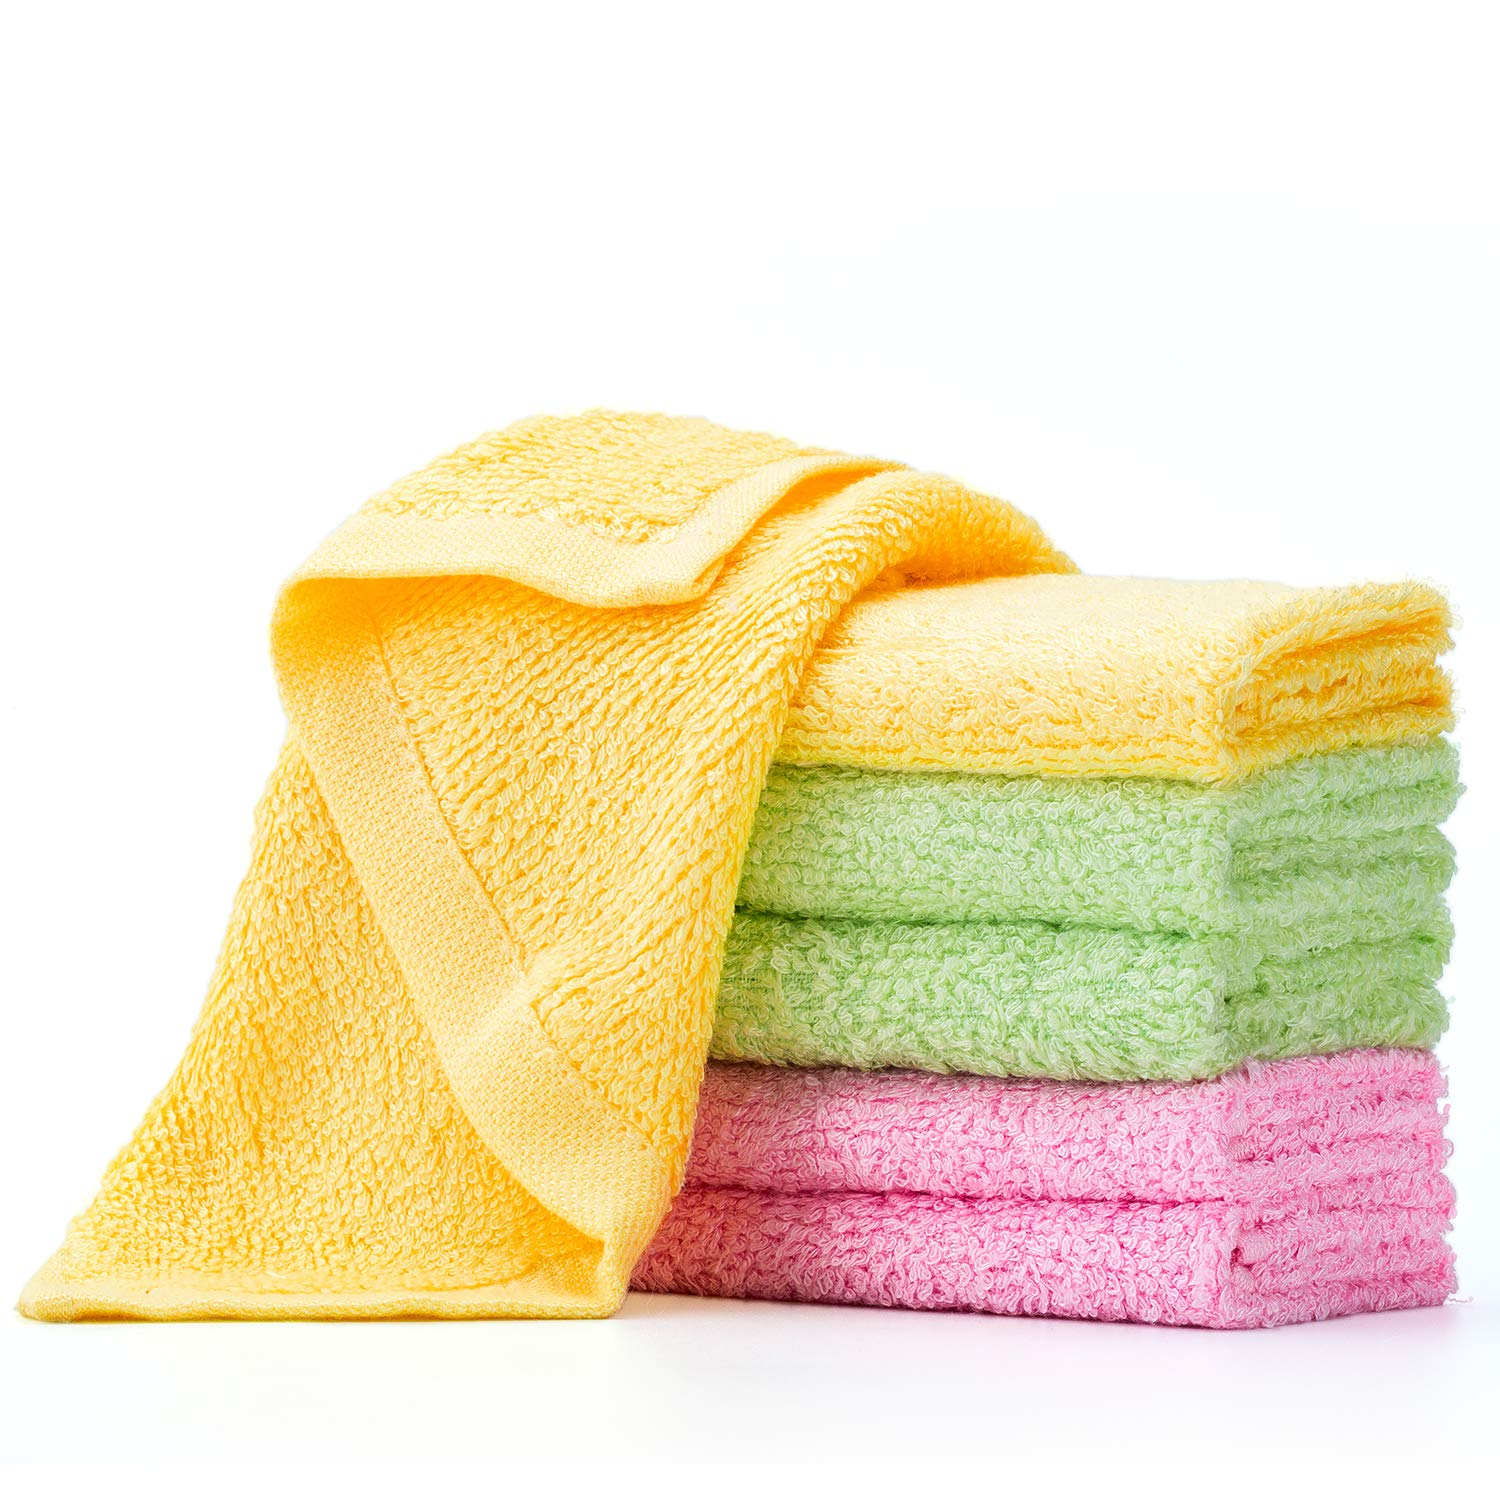 100% ECO-FRIENDLY Wood Fiber Multi-Purpose Cleaning Cloths - Washcloth - Kitchen Towels - Dish Rags - Dust Wipes - Quick Dry - Super Absorbent - Very Soft - Lint Free - 6 Pack - 3 Colors - 10x10 inch